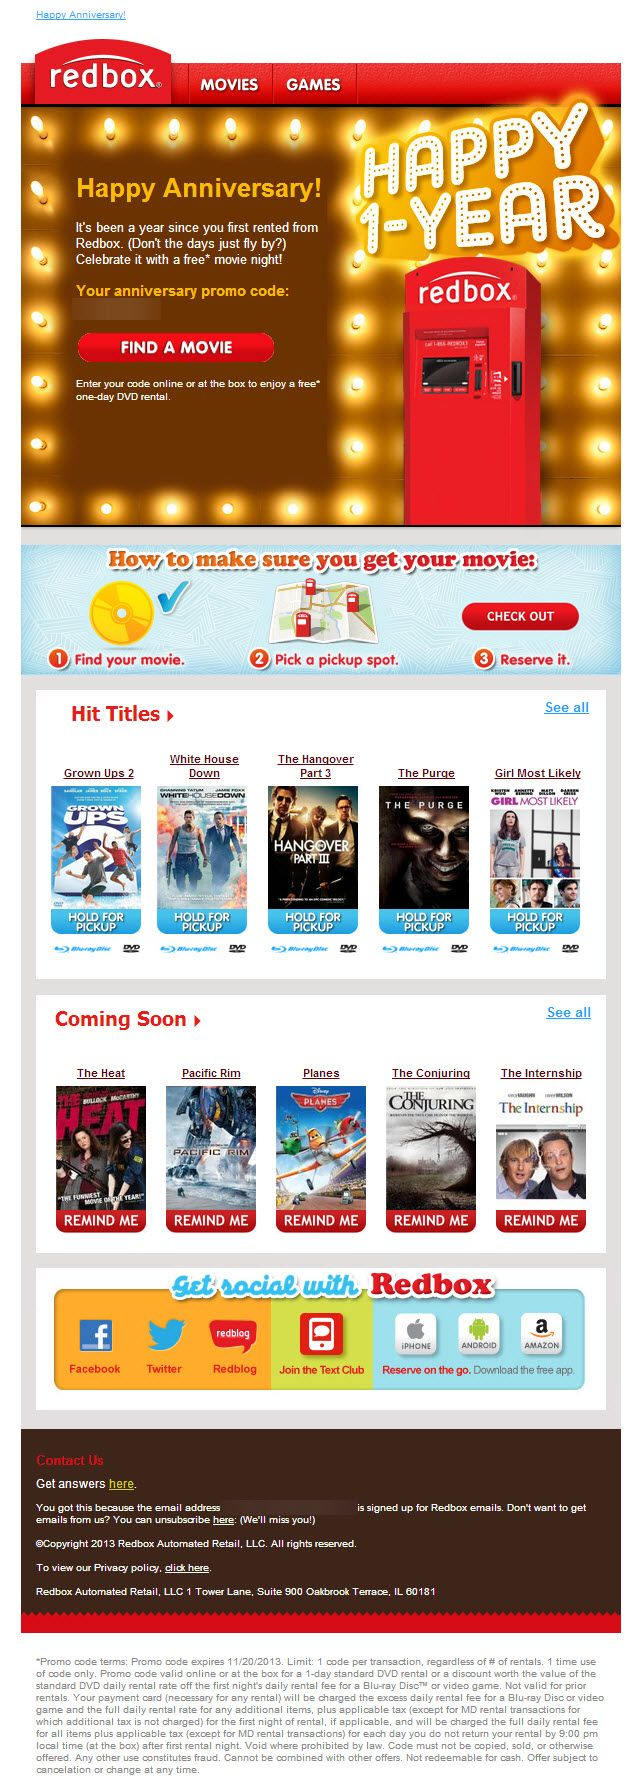 14 best email creative anniversary images on pinterest email sent sl your anniversary freebie is inside great customer anniversary email from redbox including a coupon for a free movie